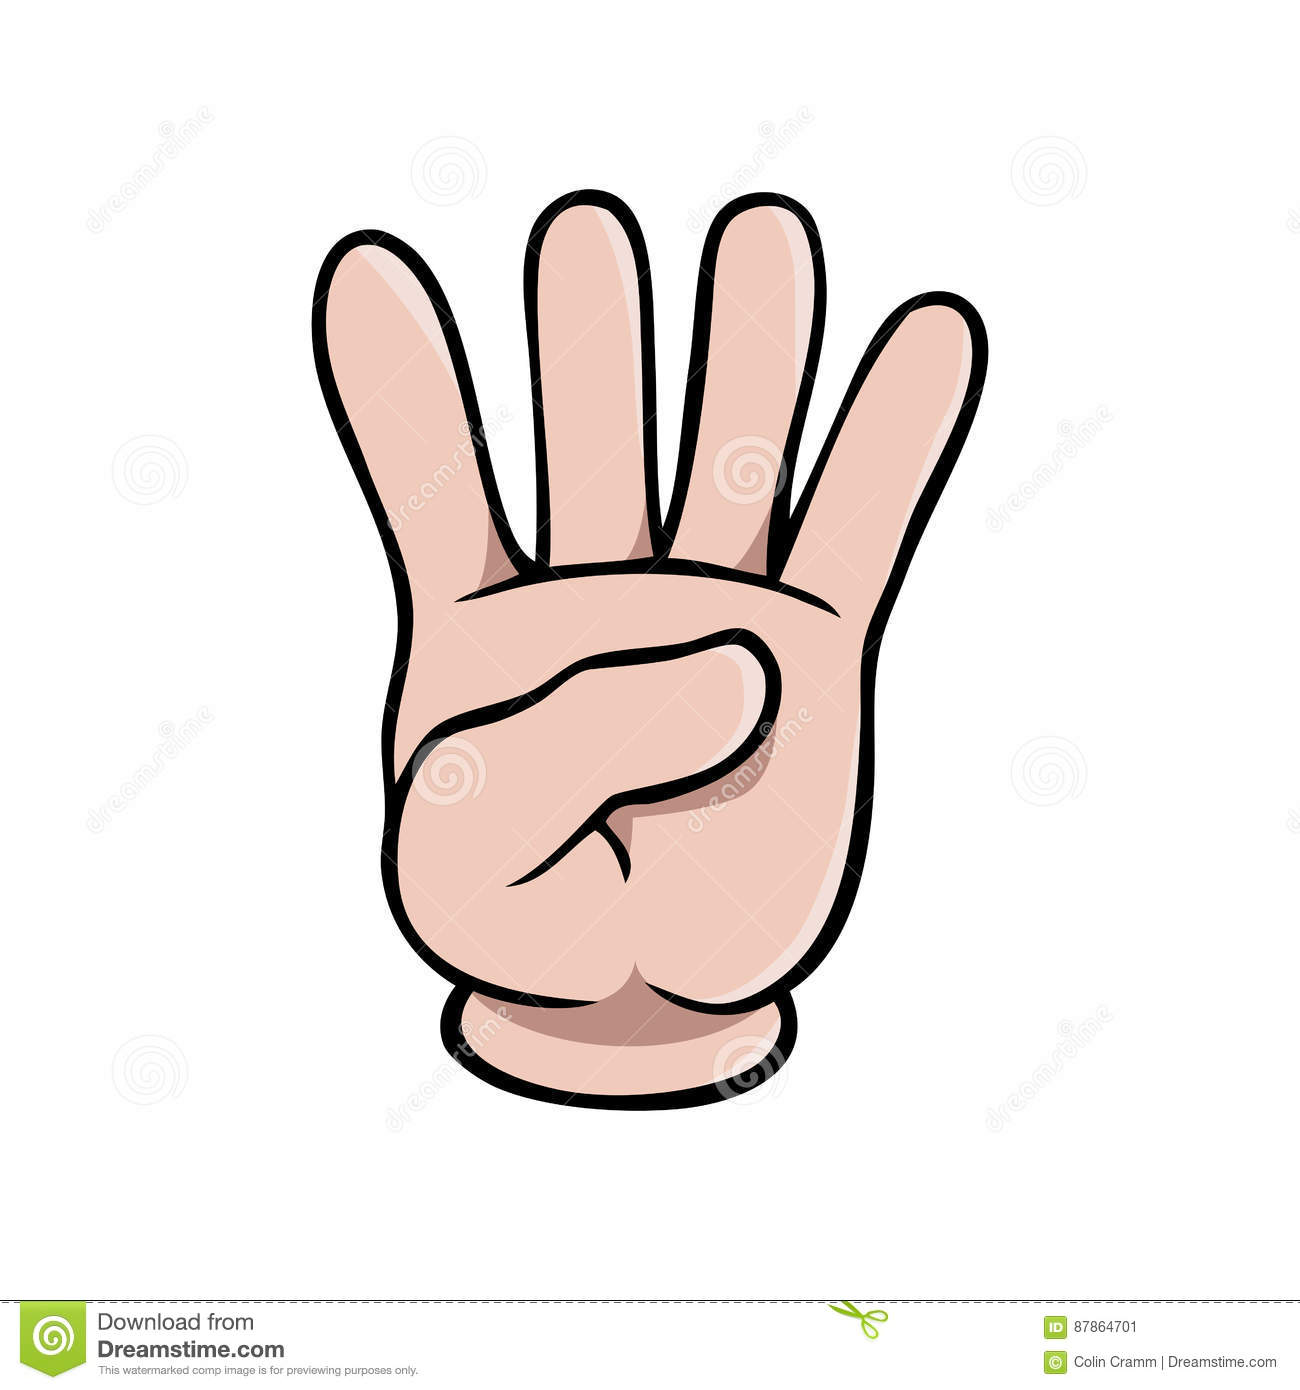 Human Cartoon Hand Showing Four Fingers Stock Vector.